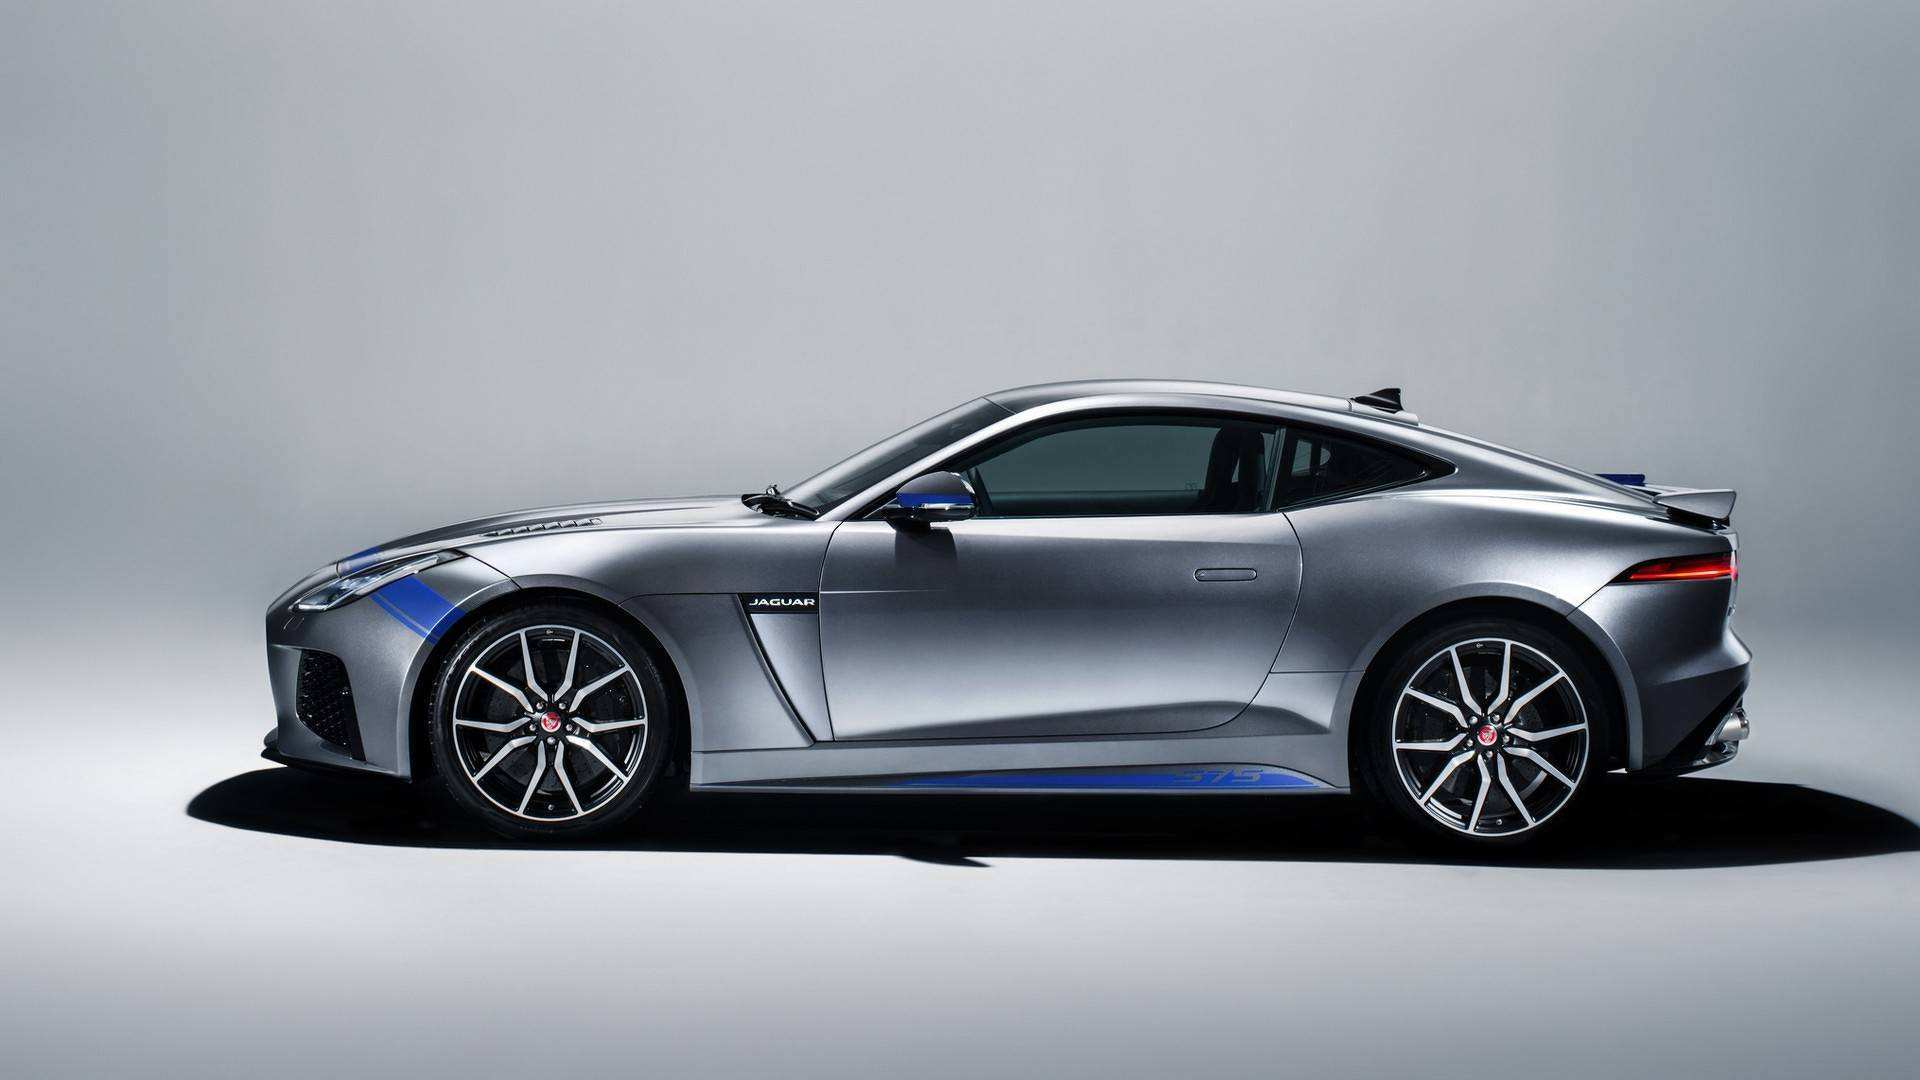 72 The Best Jaguar Coupe 2020 Picture